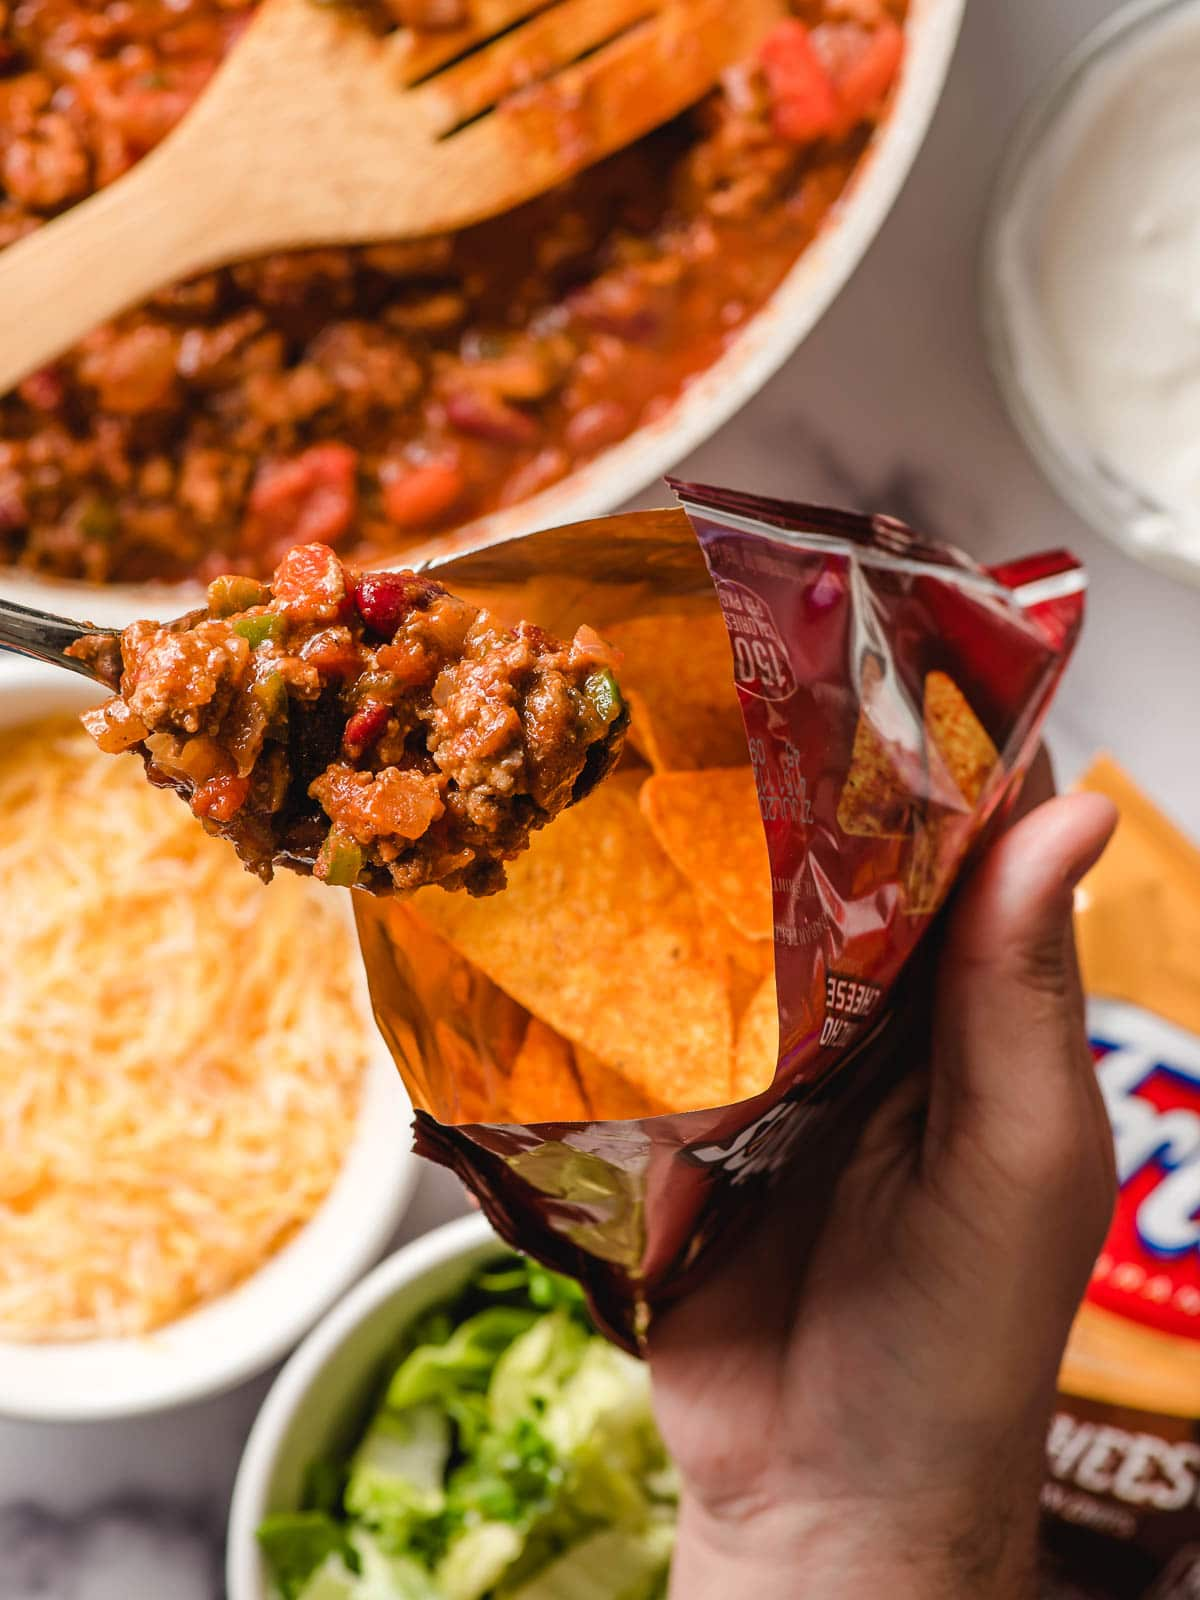 Spoon scooping taco meat into a bag of Doritos.